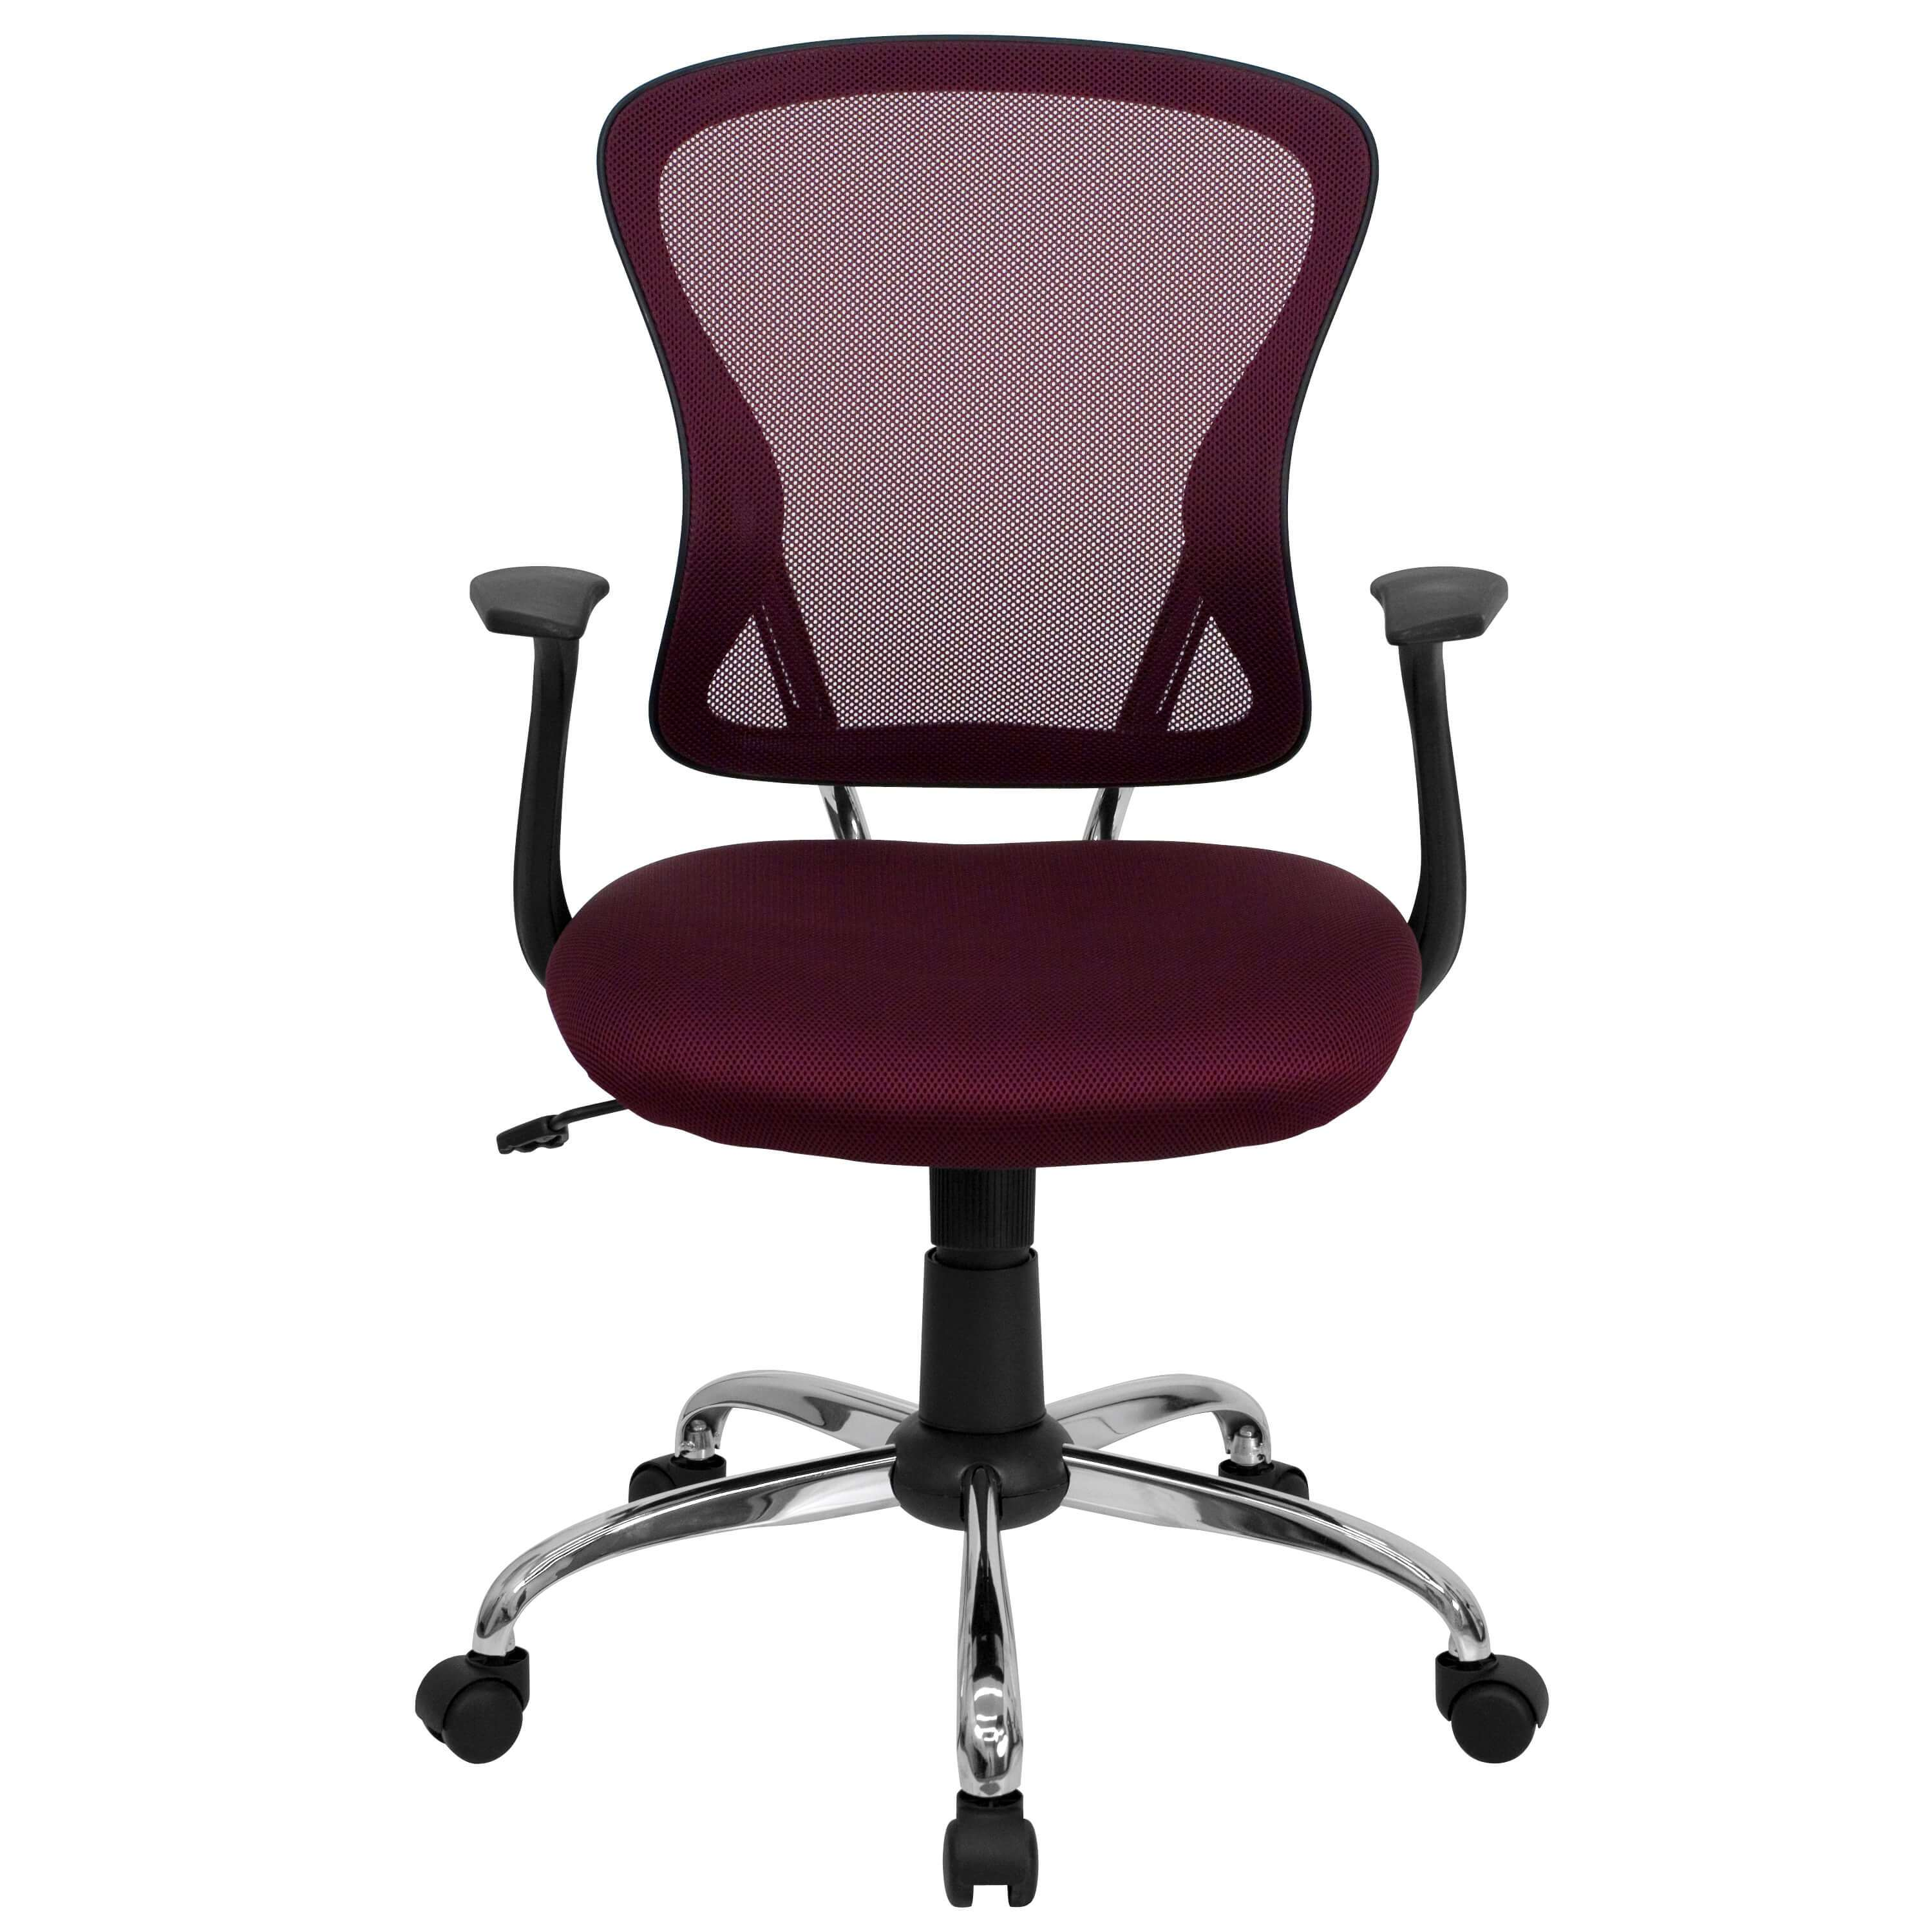 Colorful desk chairs CUB H 8369F ALL BY GG FLA